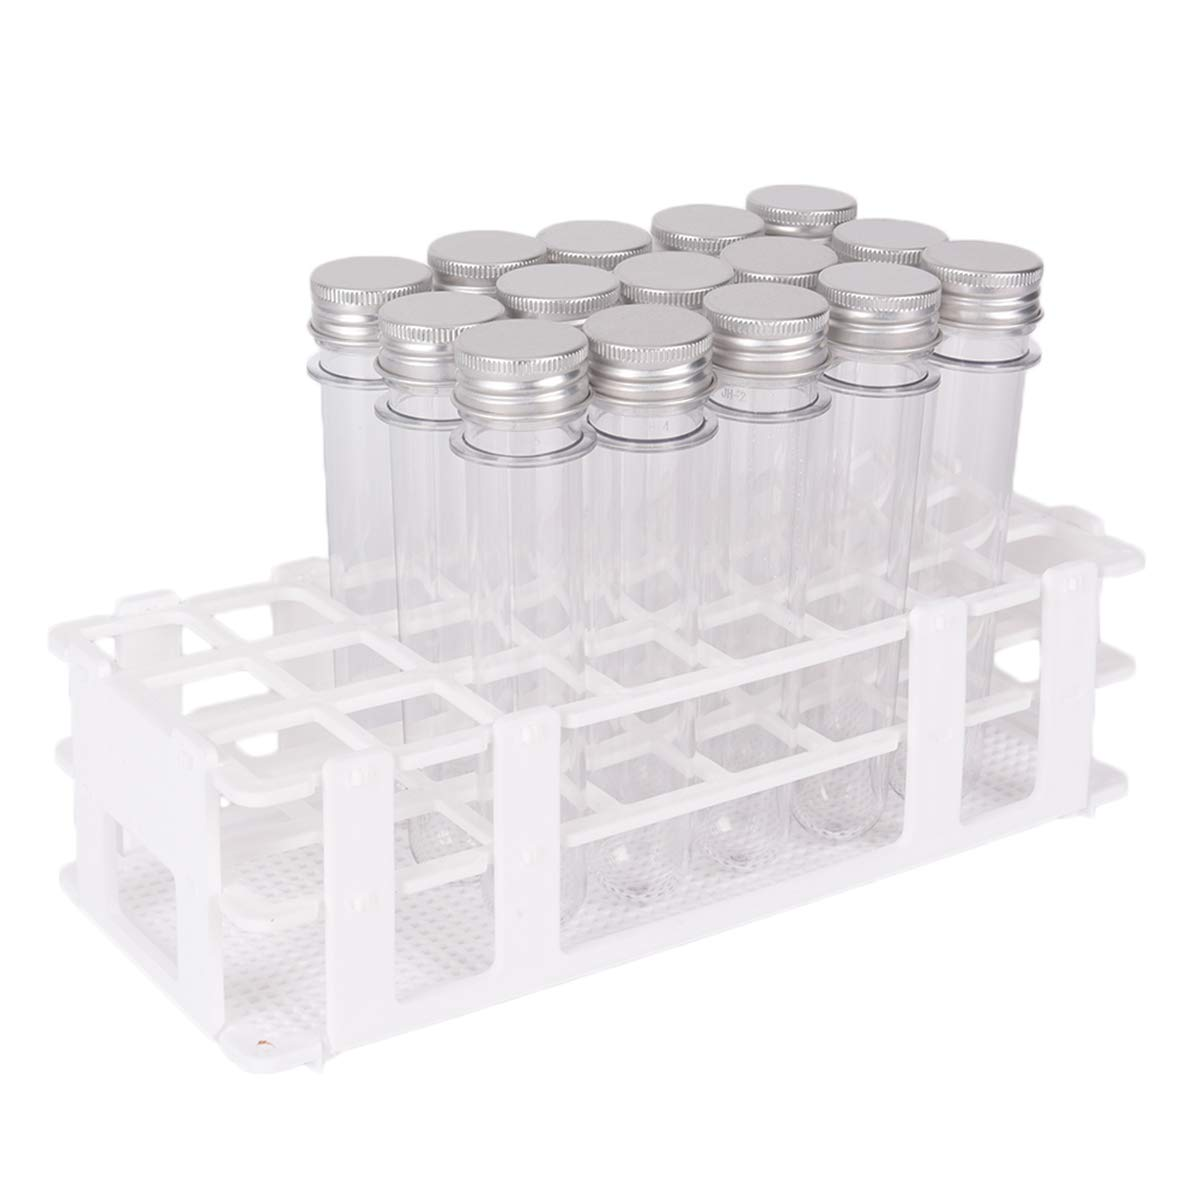 15 Pack Test Tubes with Rack Buytra 40ml Clear Plastic Test Tube Gumball Candy Tube with Caps 25x140mm 24 Holes Detachable Test Tube Rack Holder for 25mm Tubes